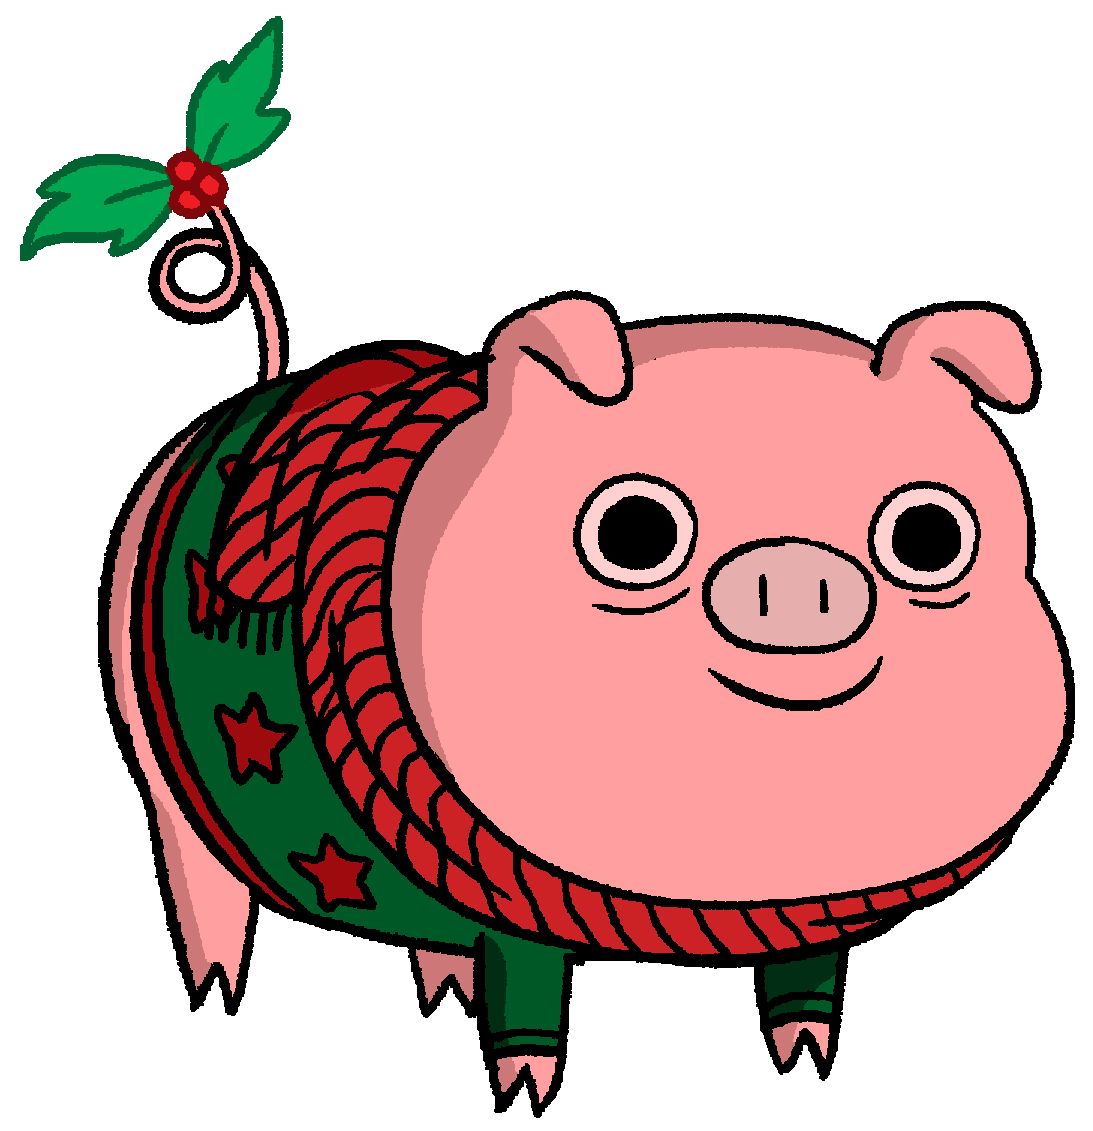 Pig and apple tree clipart clip library stock Image - Pig sweater.png | Adventure Time Wiki | FANDOM powered by Wikia clip library stock